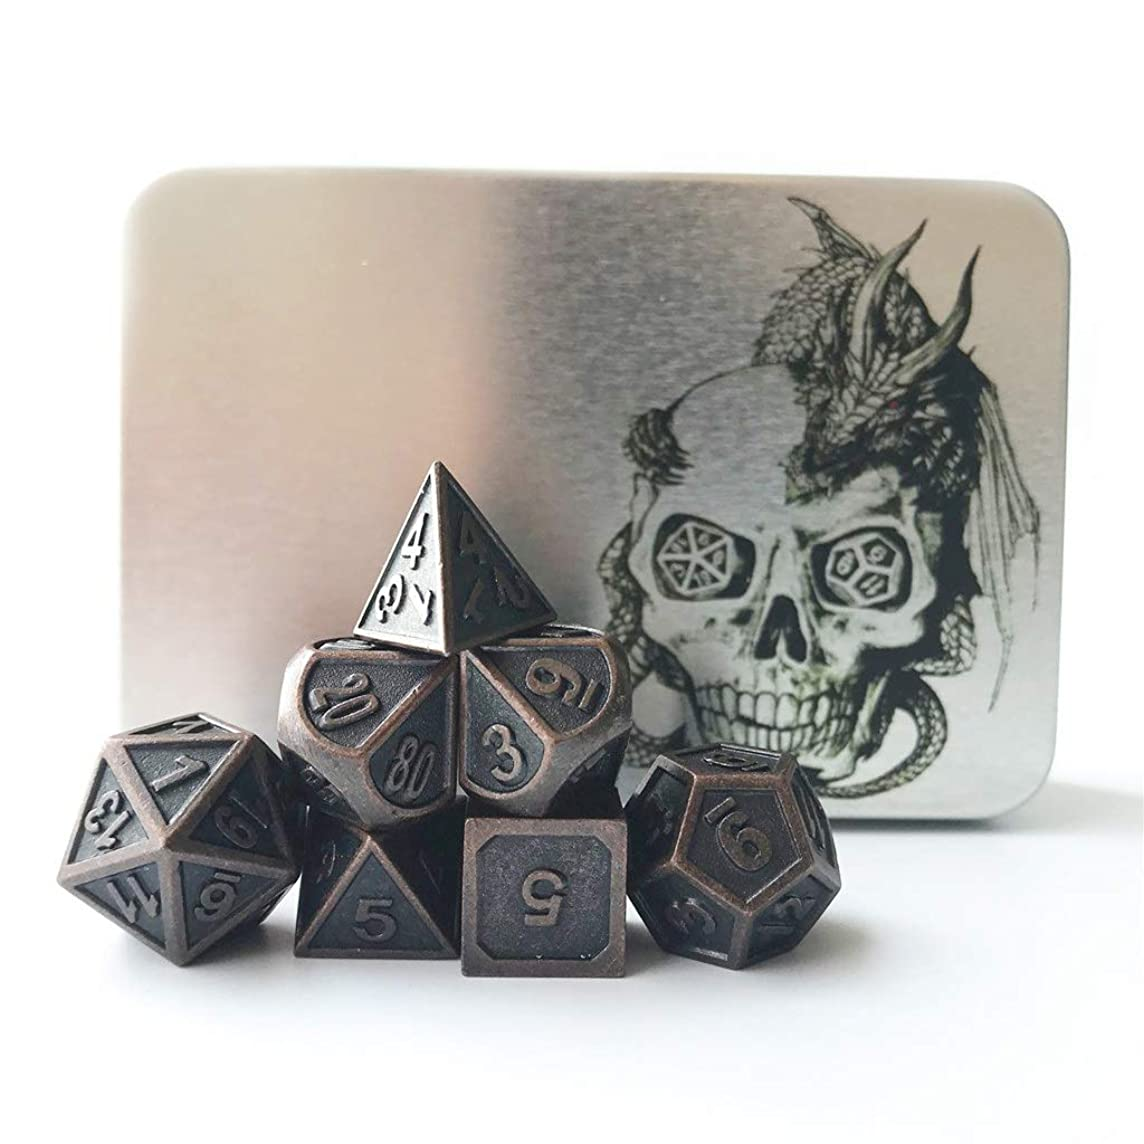 Truewon Metal Dice Set of 7 with Metal Case (Ridge Rustey Red Copper Color)